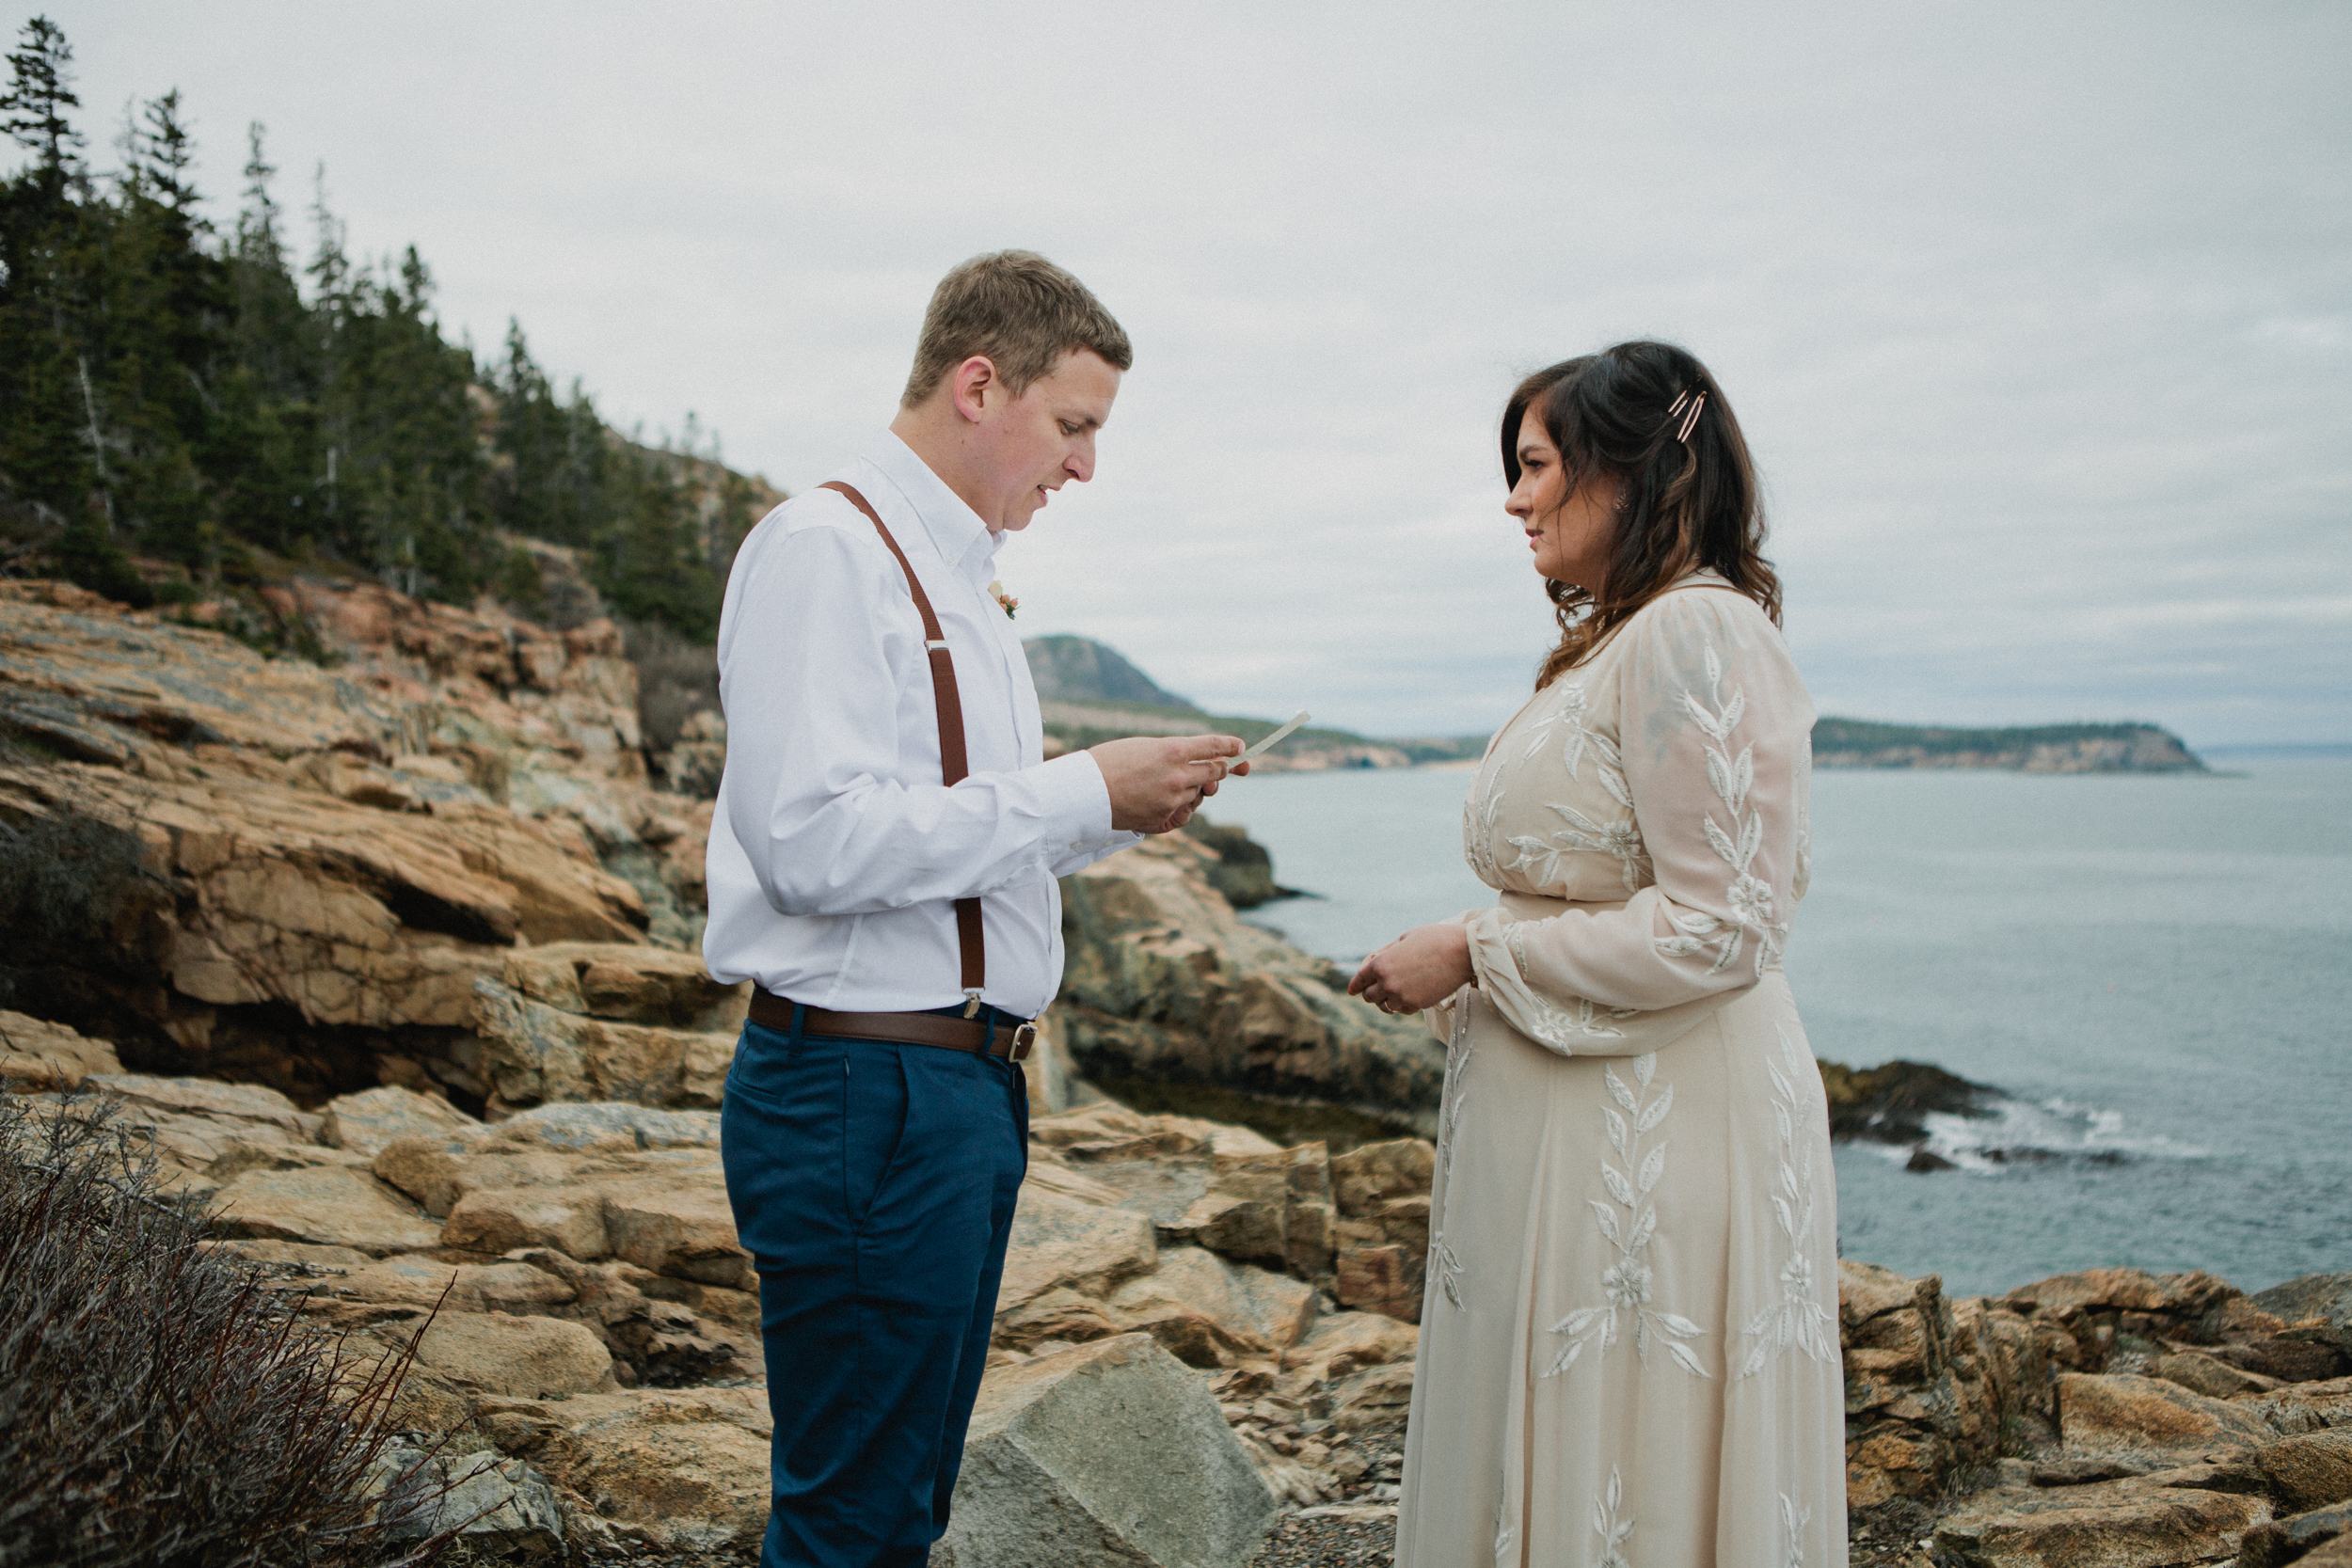 Acadia-Elopement-Photos-336.jpg